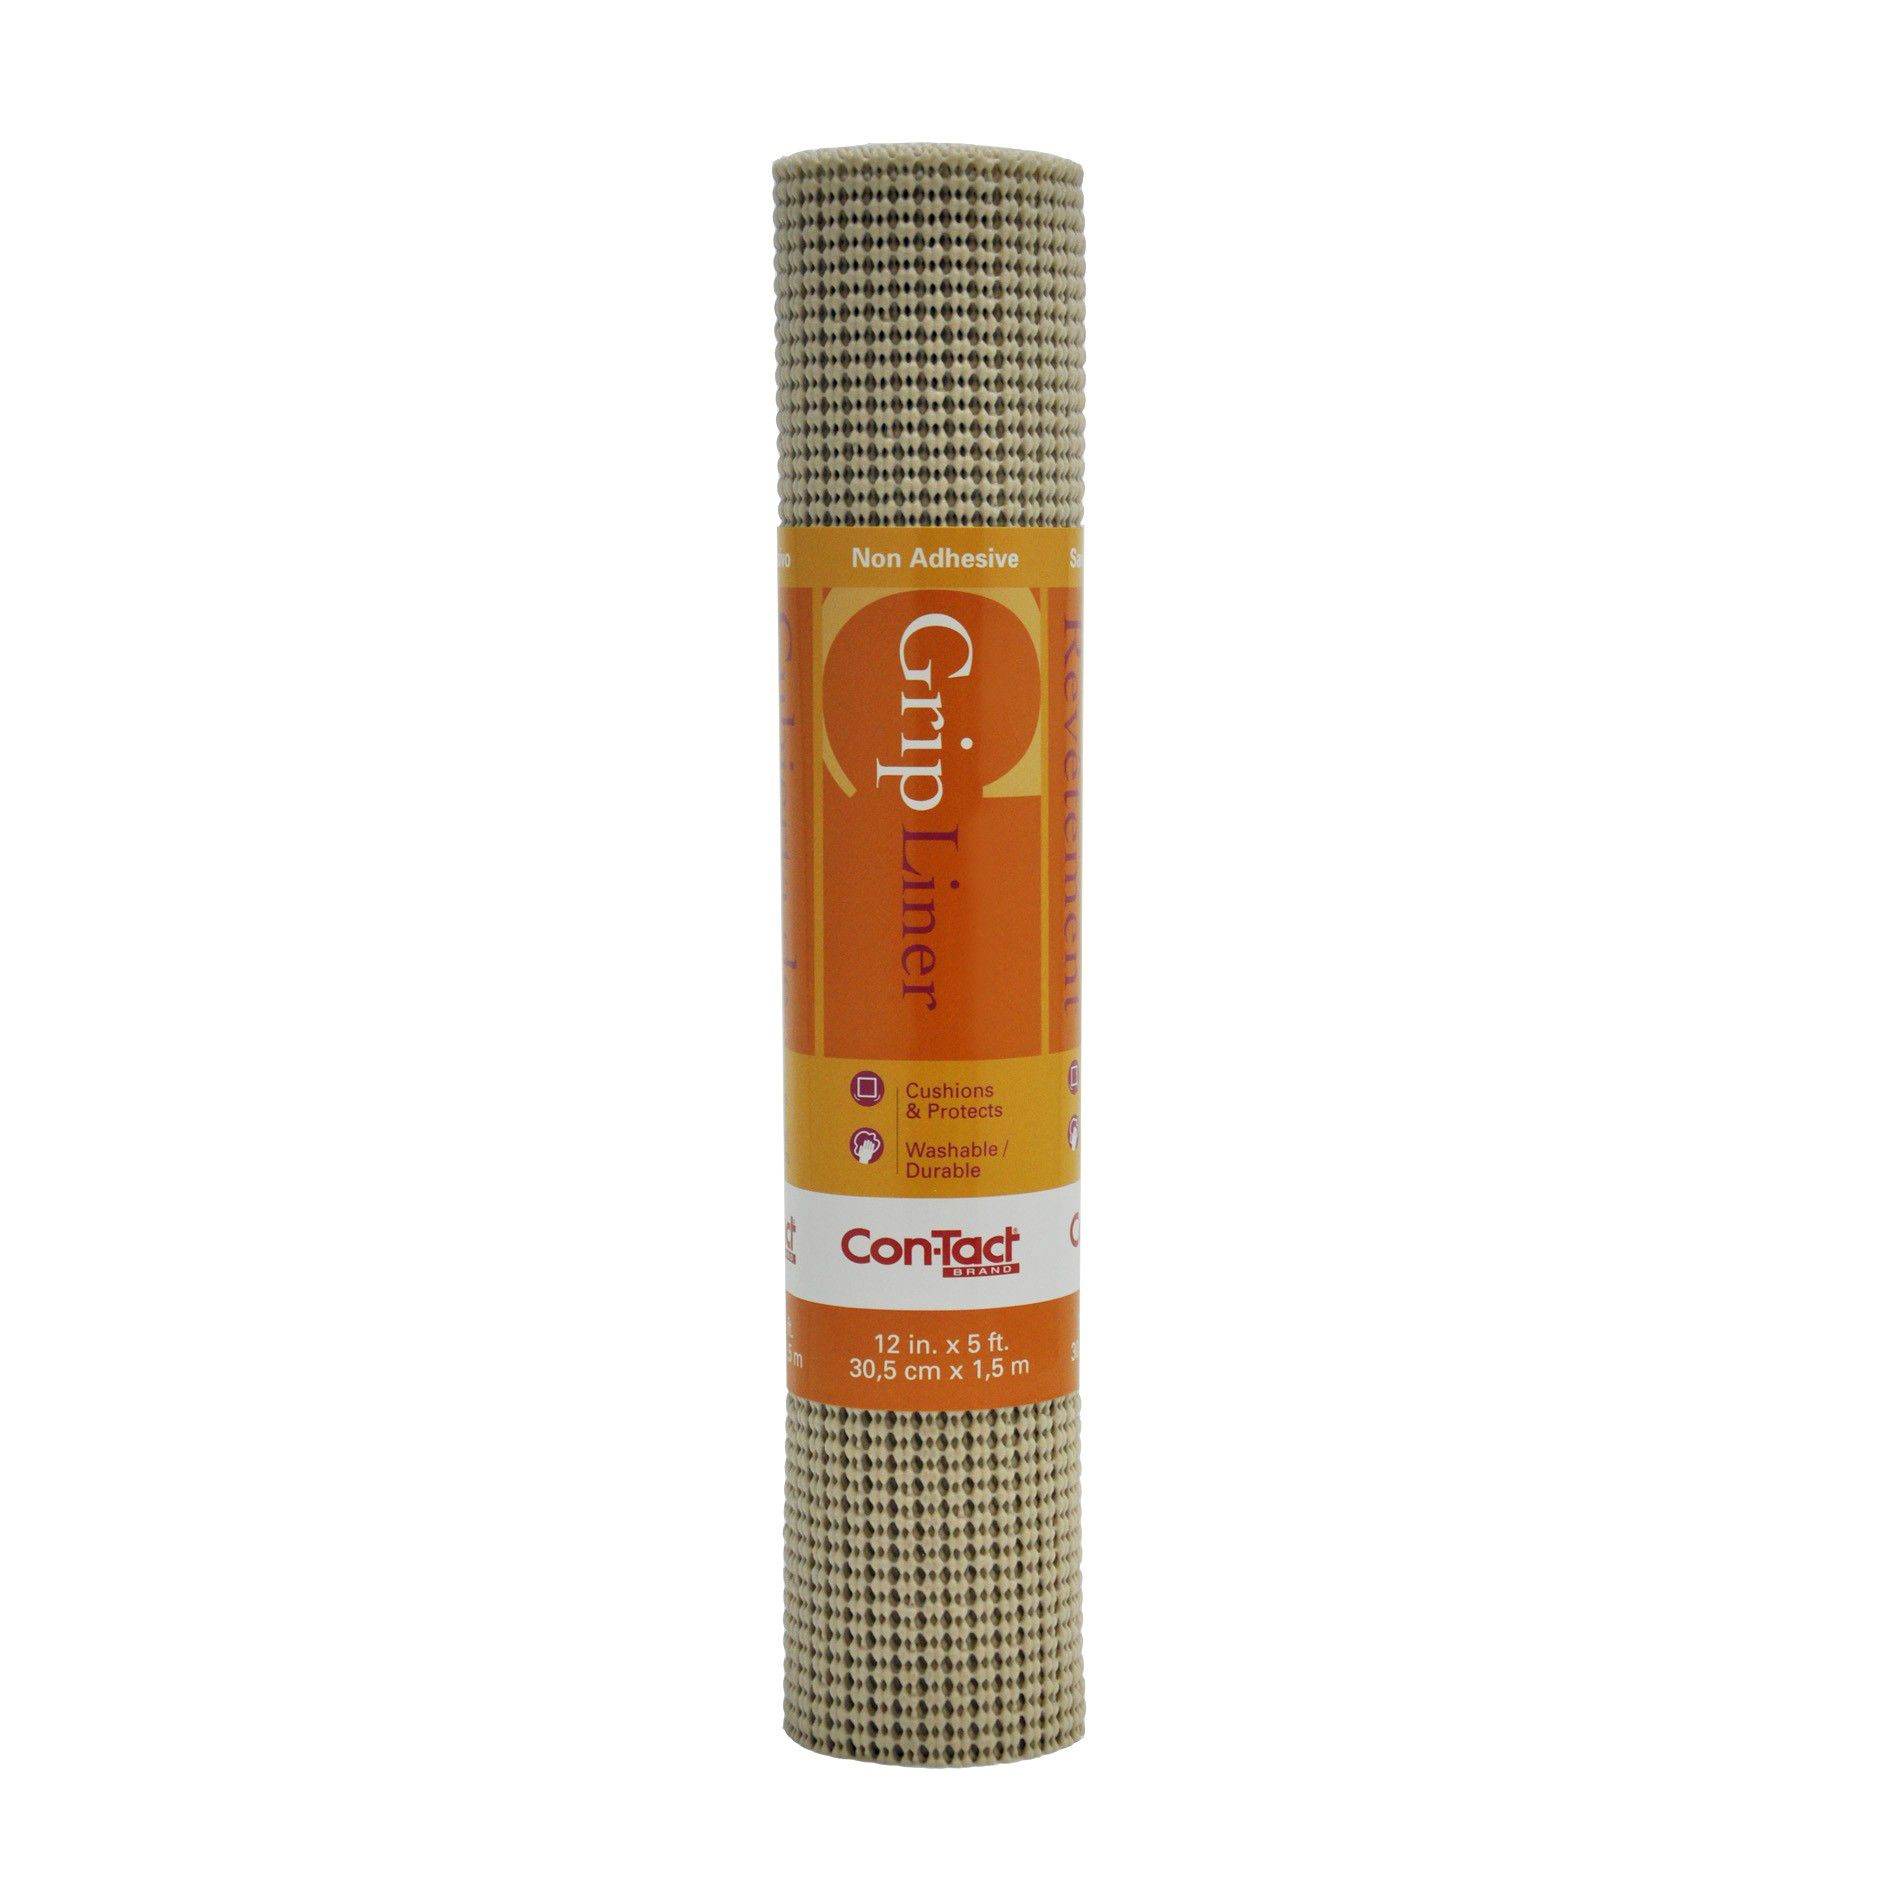 Image of Con-Tact Brand Non Slip Grip Liner 12 In x 5 Ft - Taupe, Beige & Tan-05F-C7Y59-06